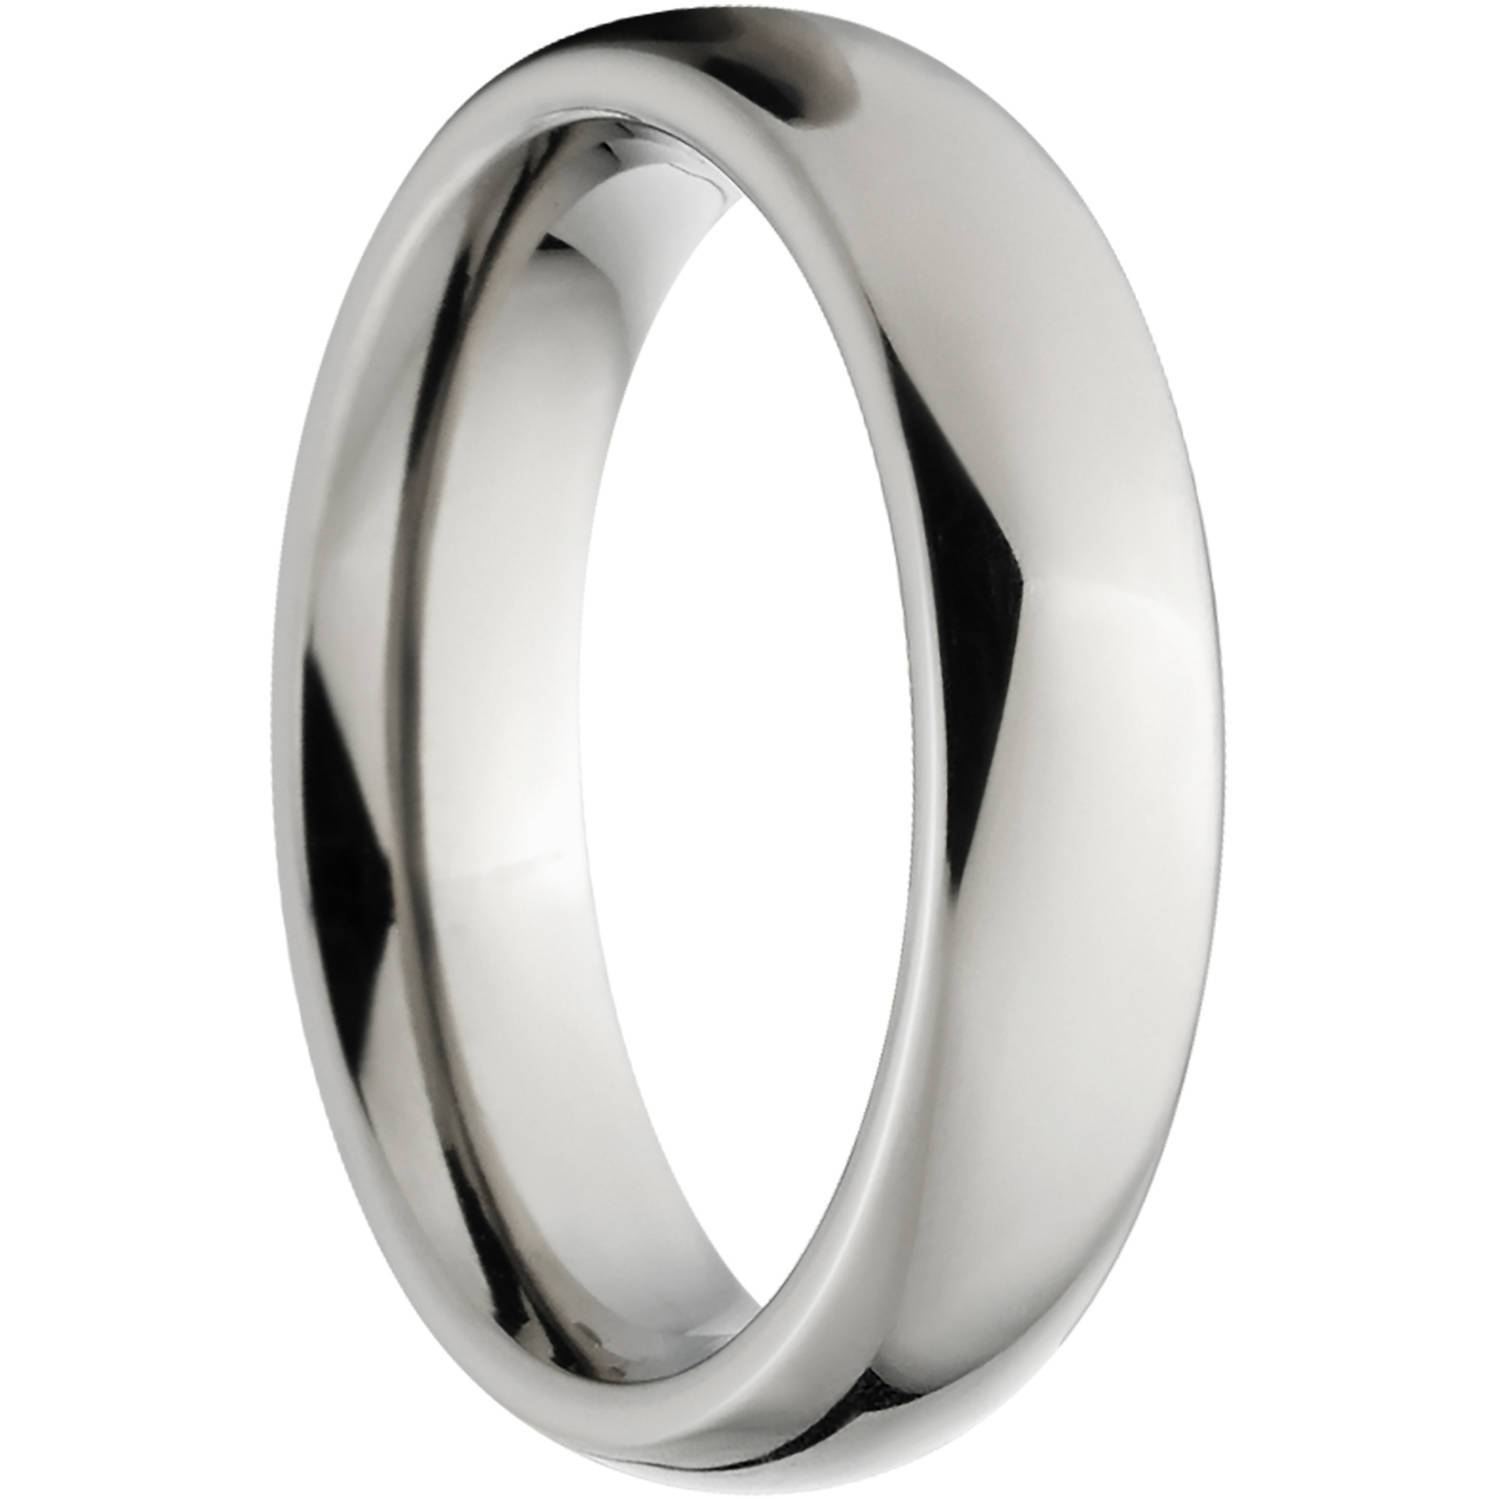 Polished 4Mm Titanium Wedding Band With Comfort Fit Design With Regard To Titanium Wedding Bands (View 8 of 15)